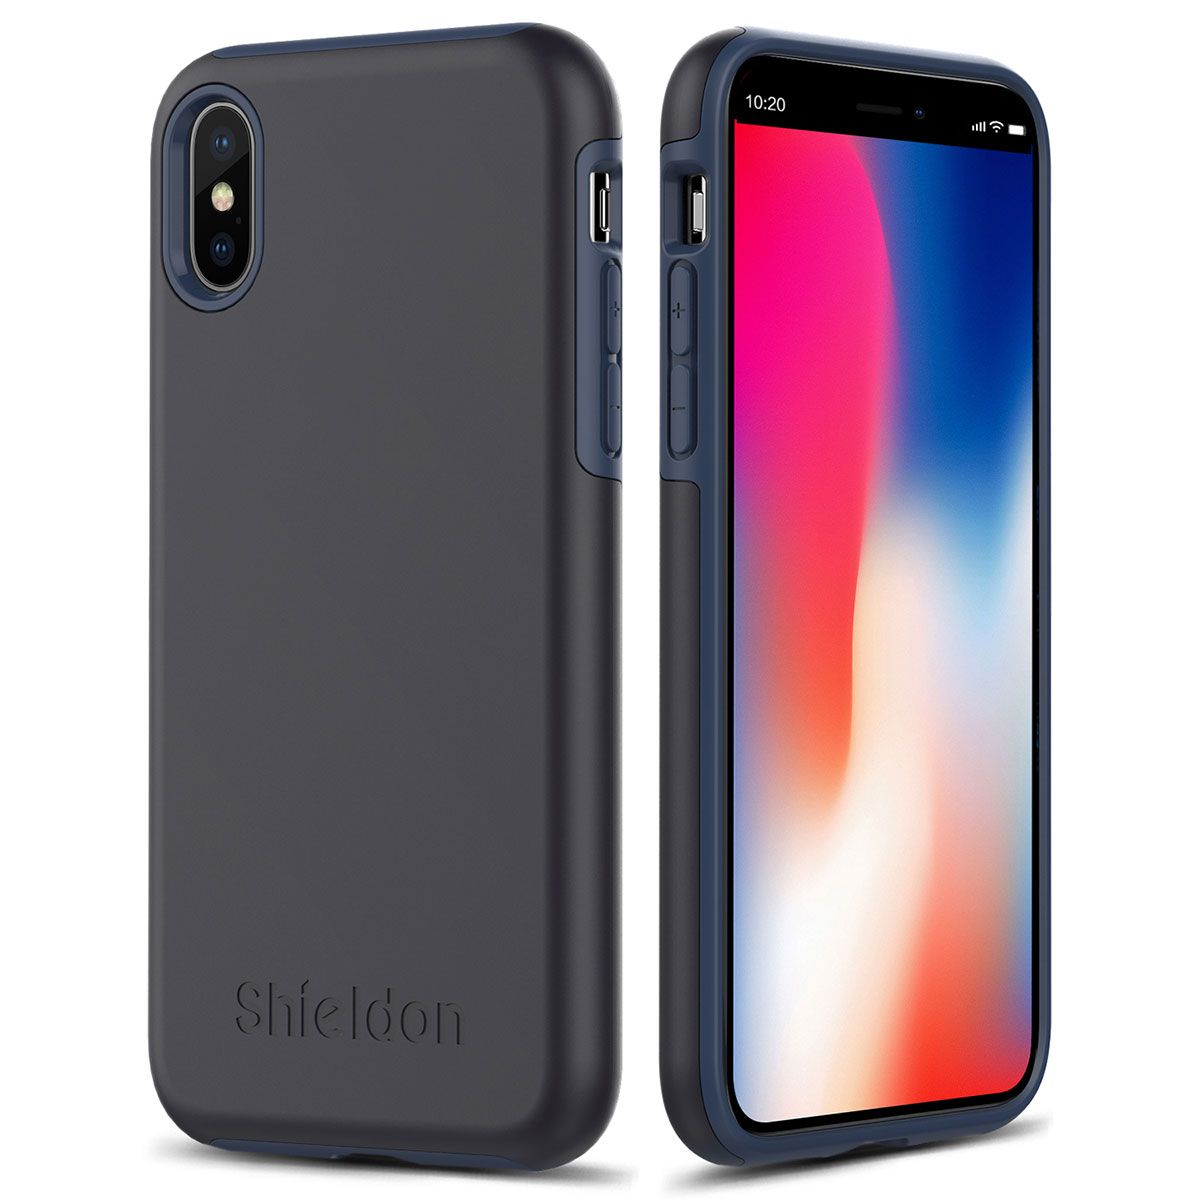 newest collection 5bff0 2426c SHIELDON iPhone X / iPhone XS Case - Dark blue grey Case for Apple iPhone X  / iPhone 10 - Plateau Series